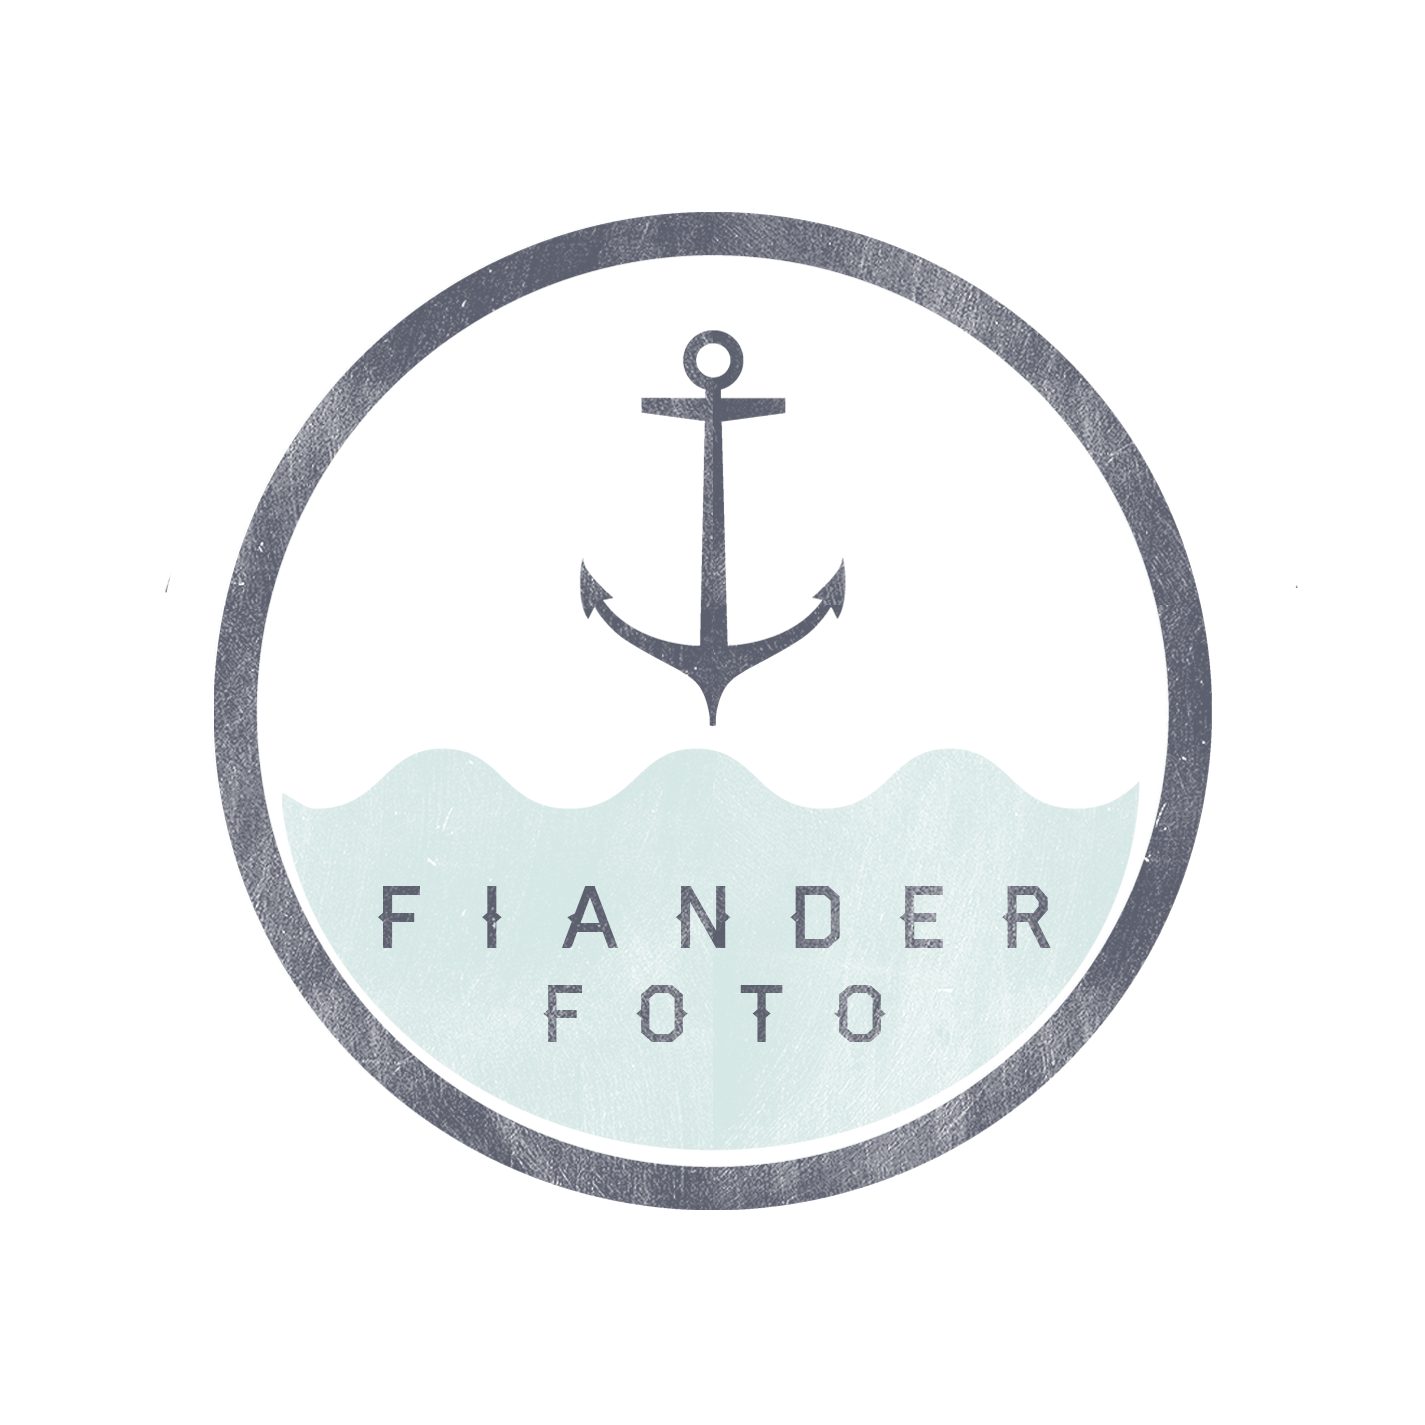 Fiander Foto - Destination Wedding & Portrait Photographer in Bermuda, Washington D.C., Italy, New England, and Beyond